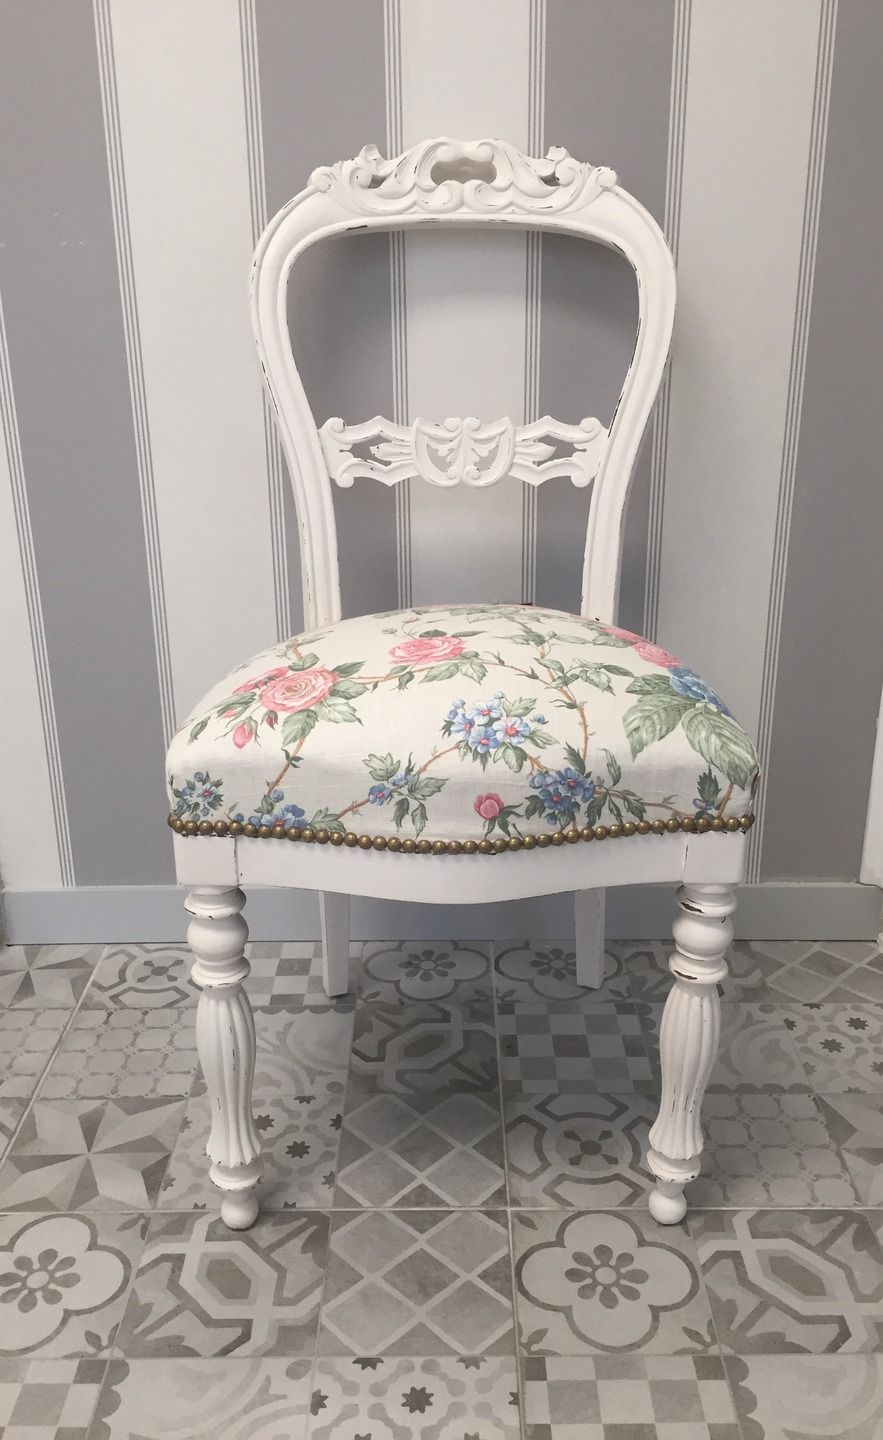 chaise ancienne patin e blanc fleurs roses bleues romantique shabby chic shabby chic gifts. Black Bedroom Furniture Sets. Home Design Ideas